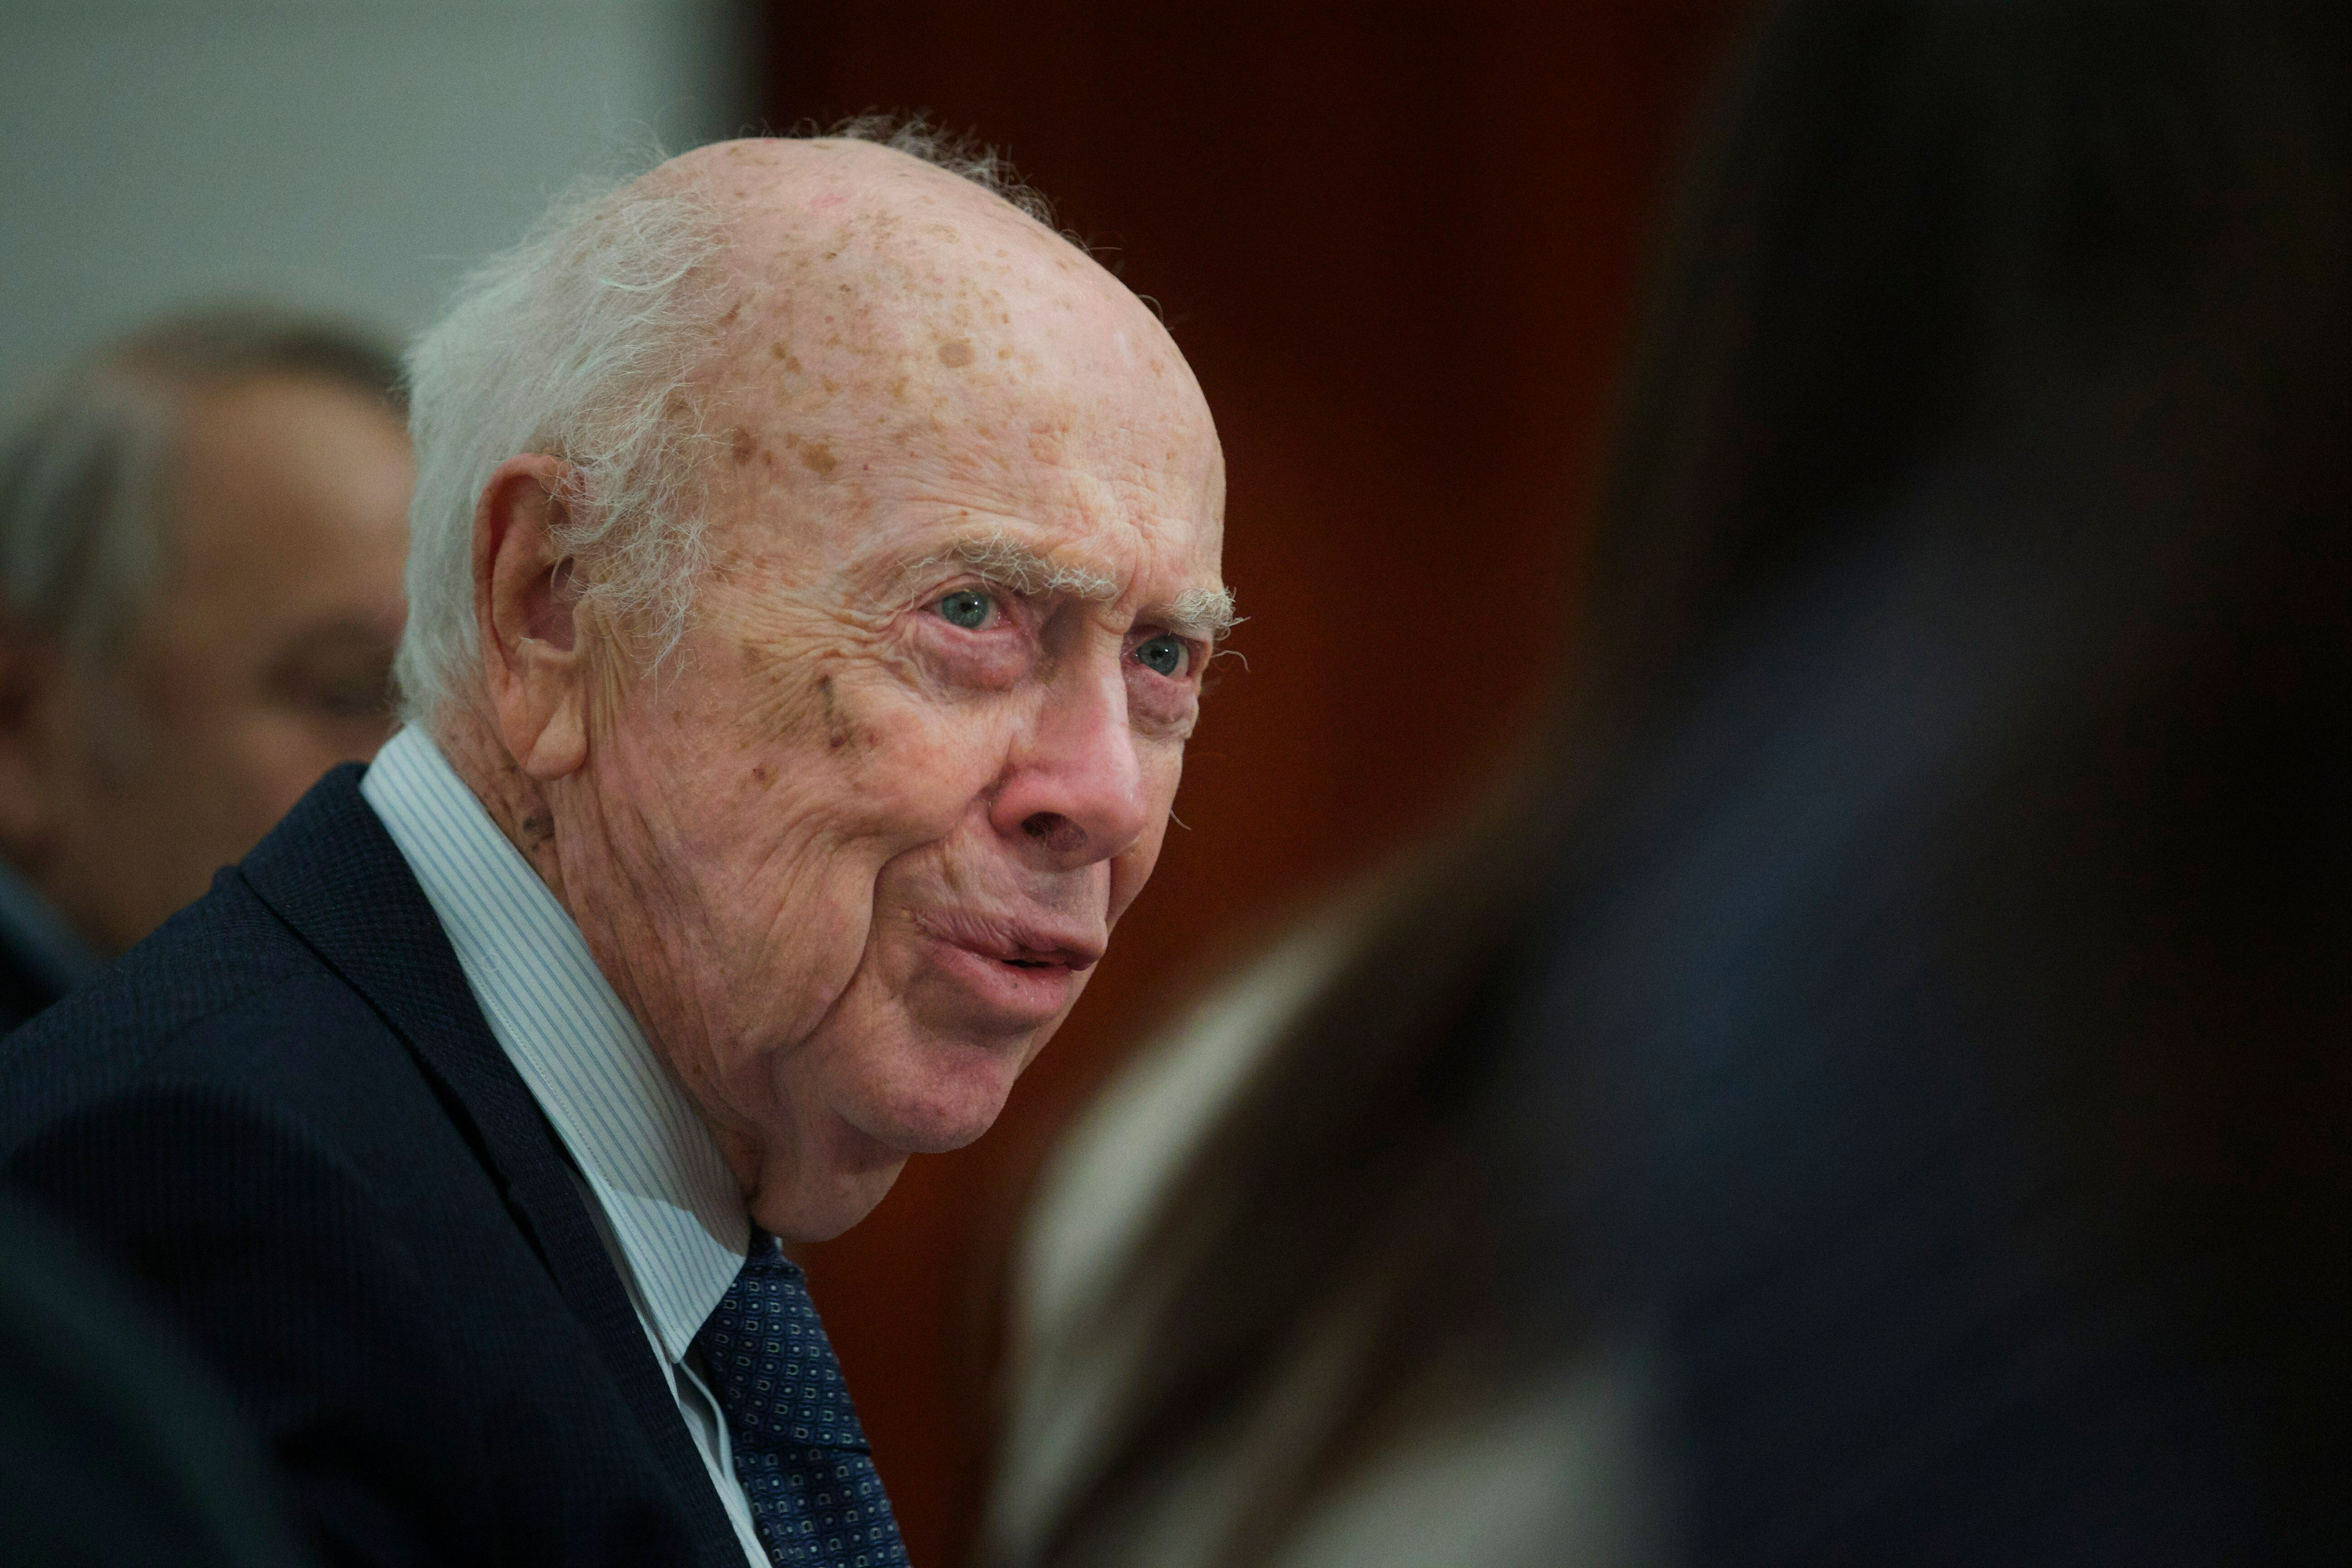 FILE - In this Wednesday, June 17, 2015 file photo, U.S. Nobel laureate biologist James Watson visits the Russian Academy of Sciences in Moscow, Russia. Watson, who lost his job in 2007 for expressing racist views, was stripped of several honorary titles on Friday, Jan. 11, 2019. (AP Photo/Ivan Sekretarev)